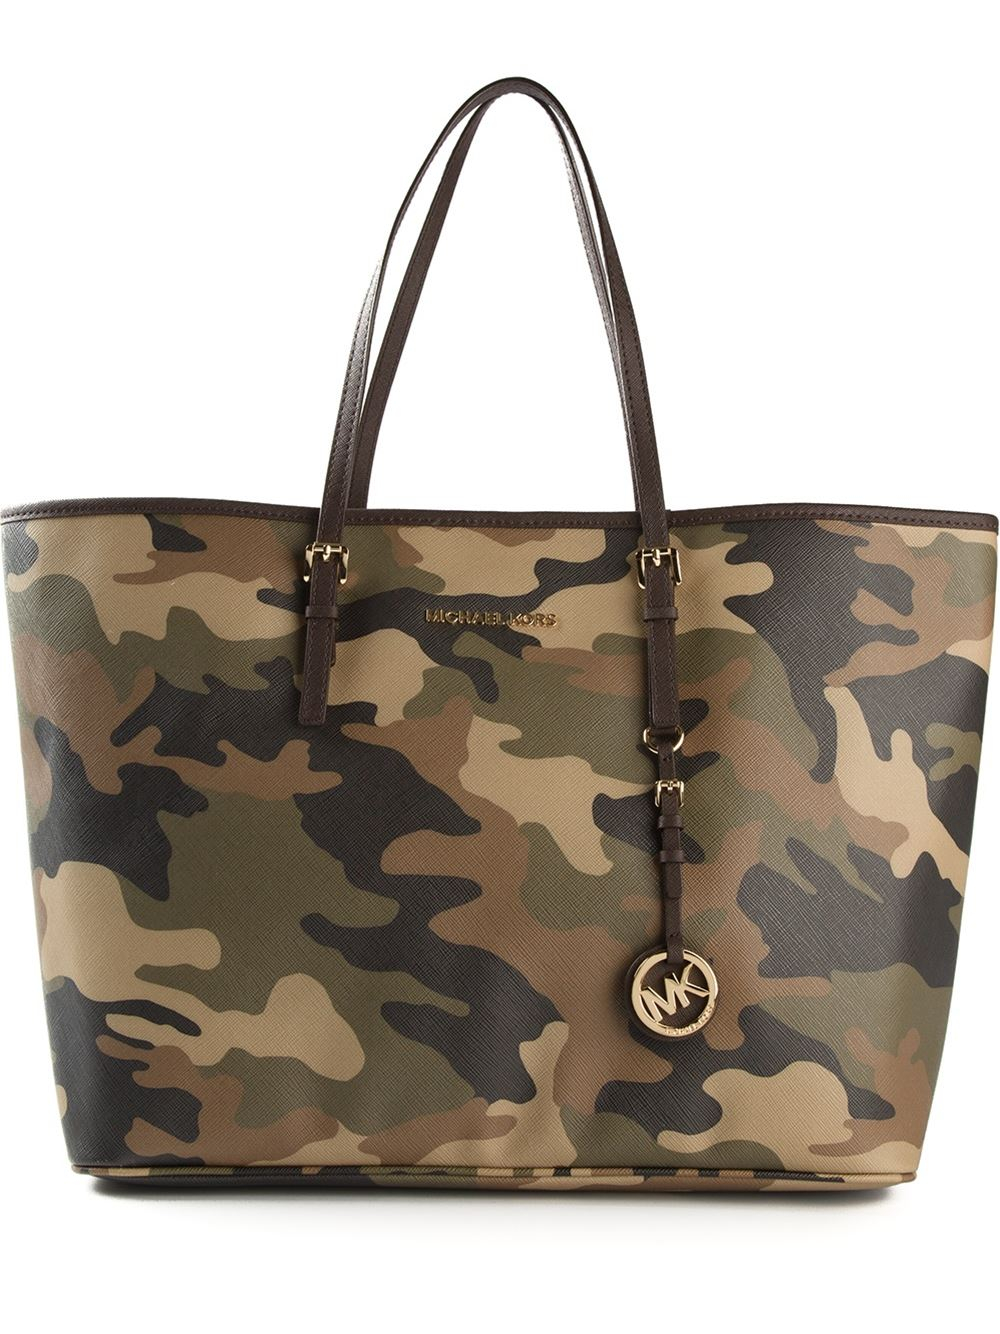 2c5bc5d0d773 MICHAEL Michael Kors Camouflage 'Jet Set' Tote in Green - Lyst